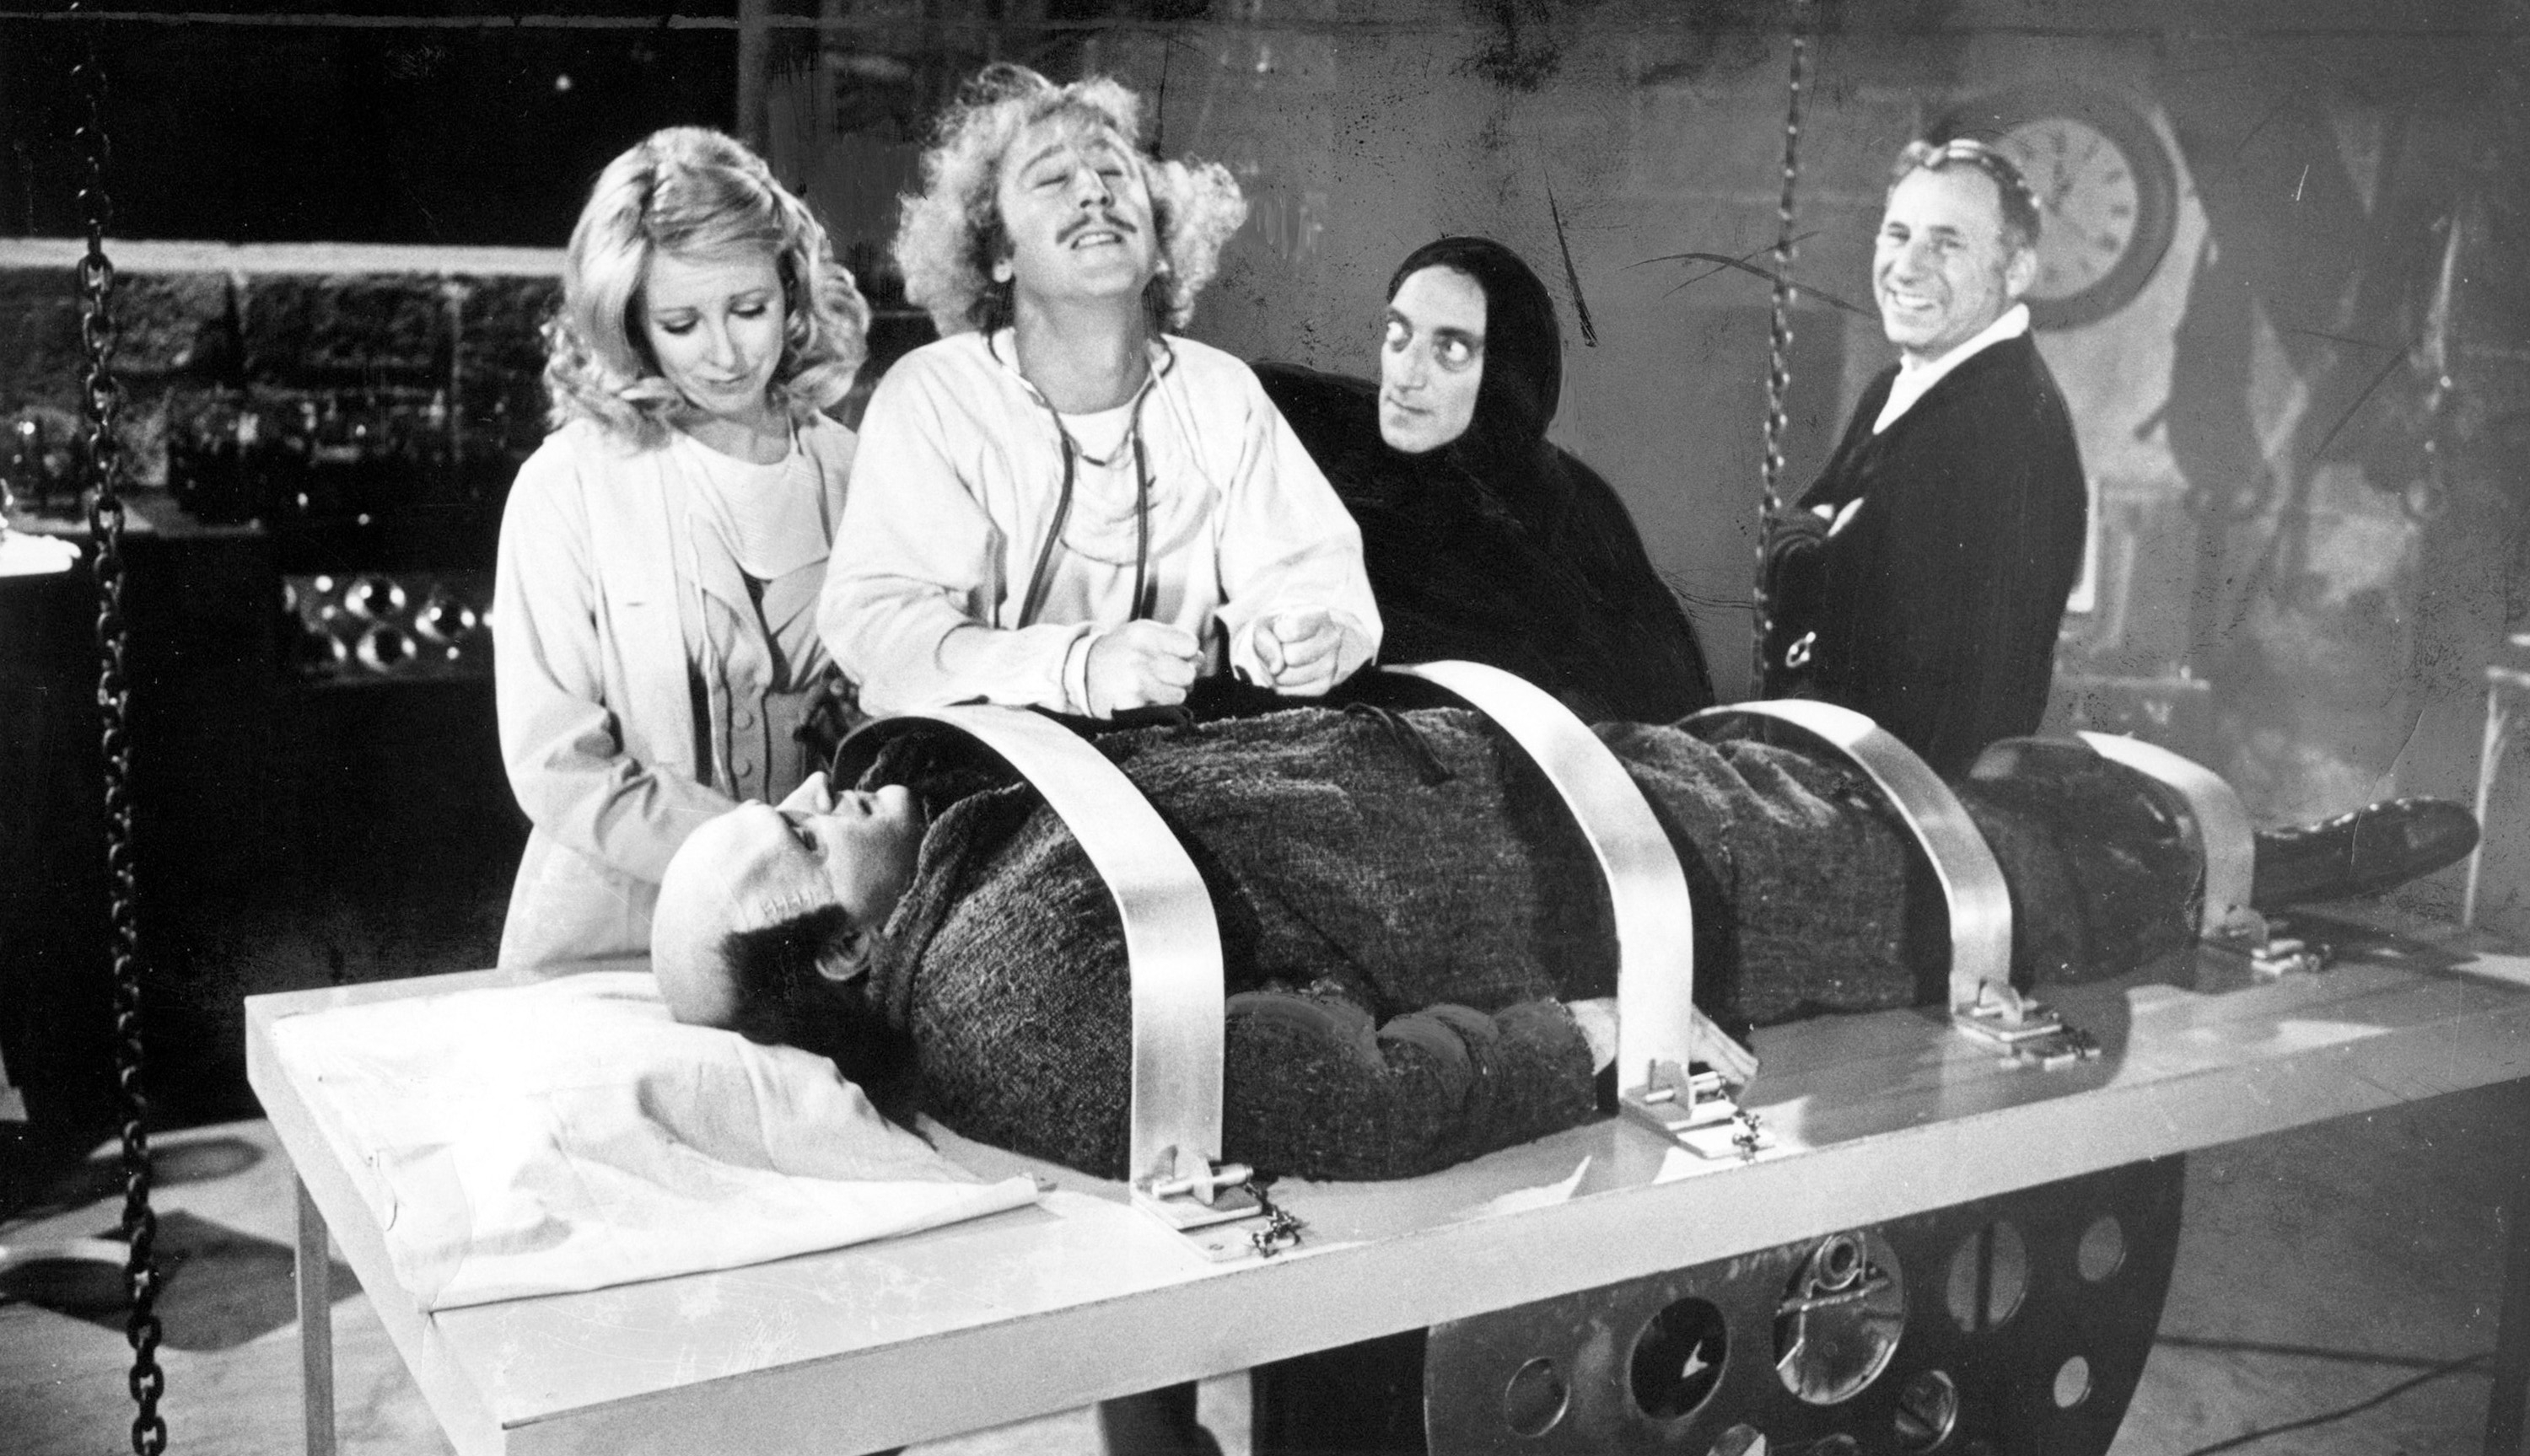 1974 staff file photo from the set of Young Frankenstein. From left: Teri Garr, Gene Wilder, Marty Feldman, Mel Brooks and Peter Boyle as Young Frankenstein. (Los Angeles Times)